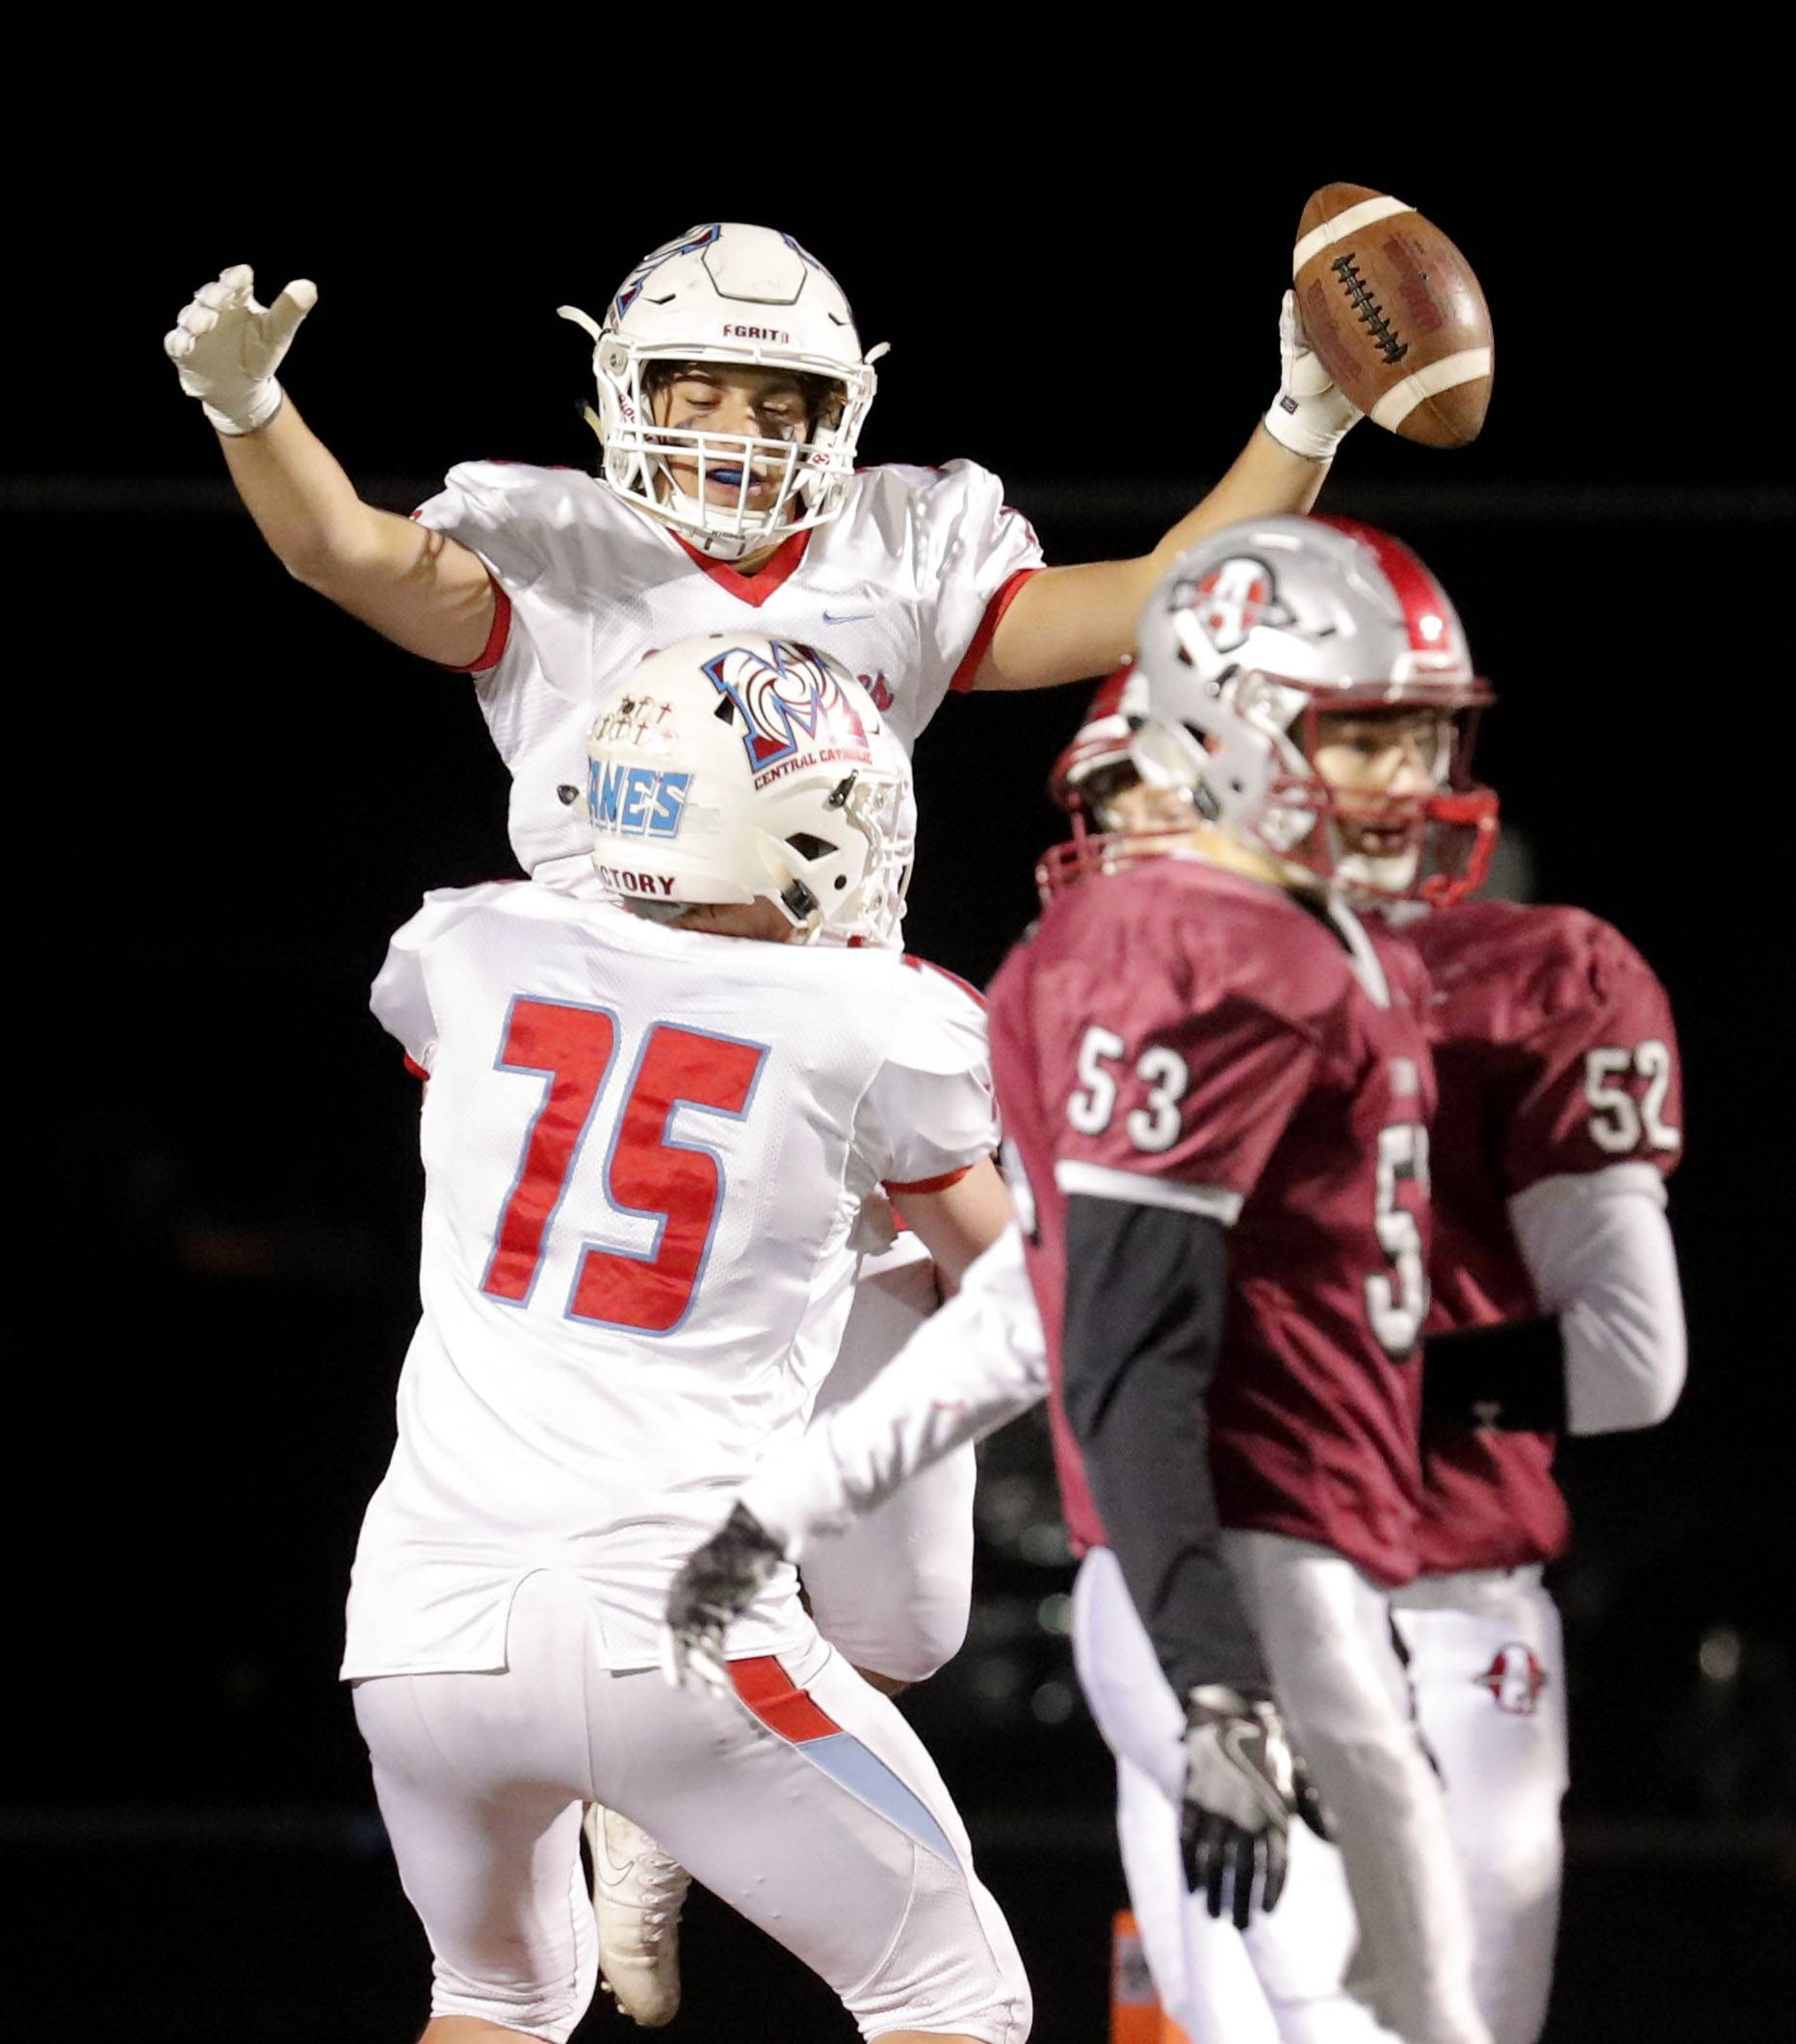 Marian Central's Pasquale Ricciardi celebrates with Kevin Herbst (75) after his TD catch during Class 5A first-round playoff action Friday in Antioch.